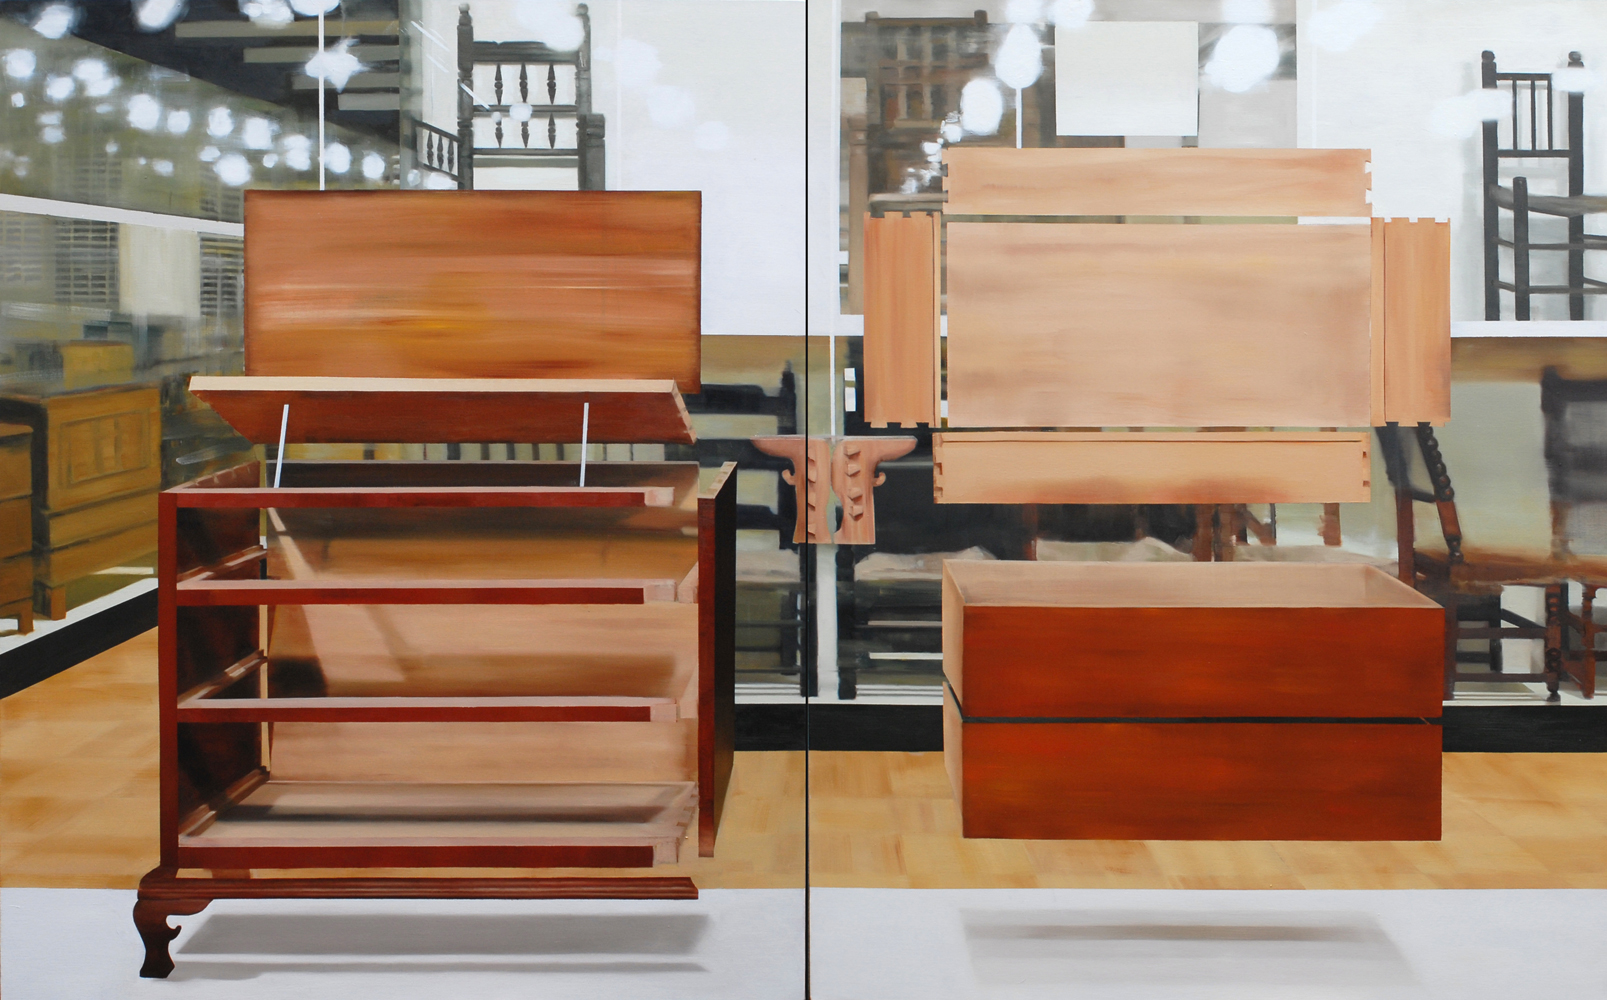 Thuy-Van Vu, American Dresser, 2014, diptych, oil on canvas, 60 x 96 inches, $8,600.